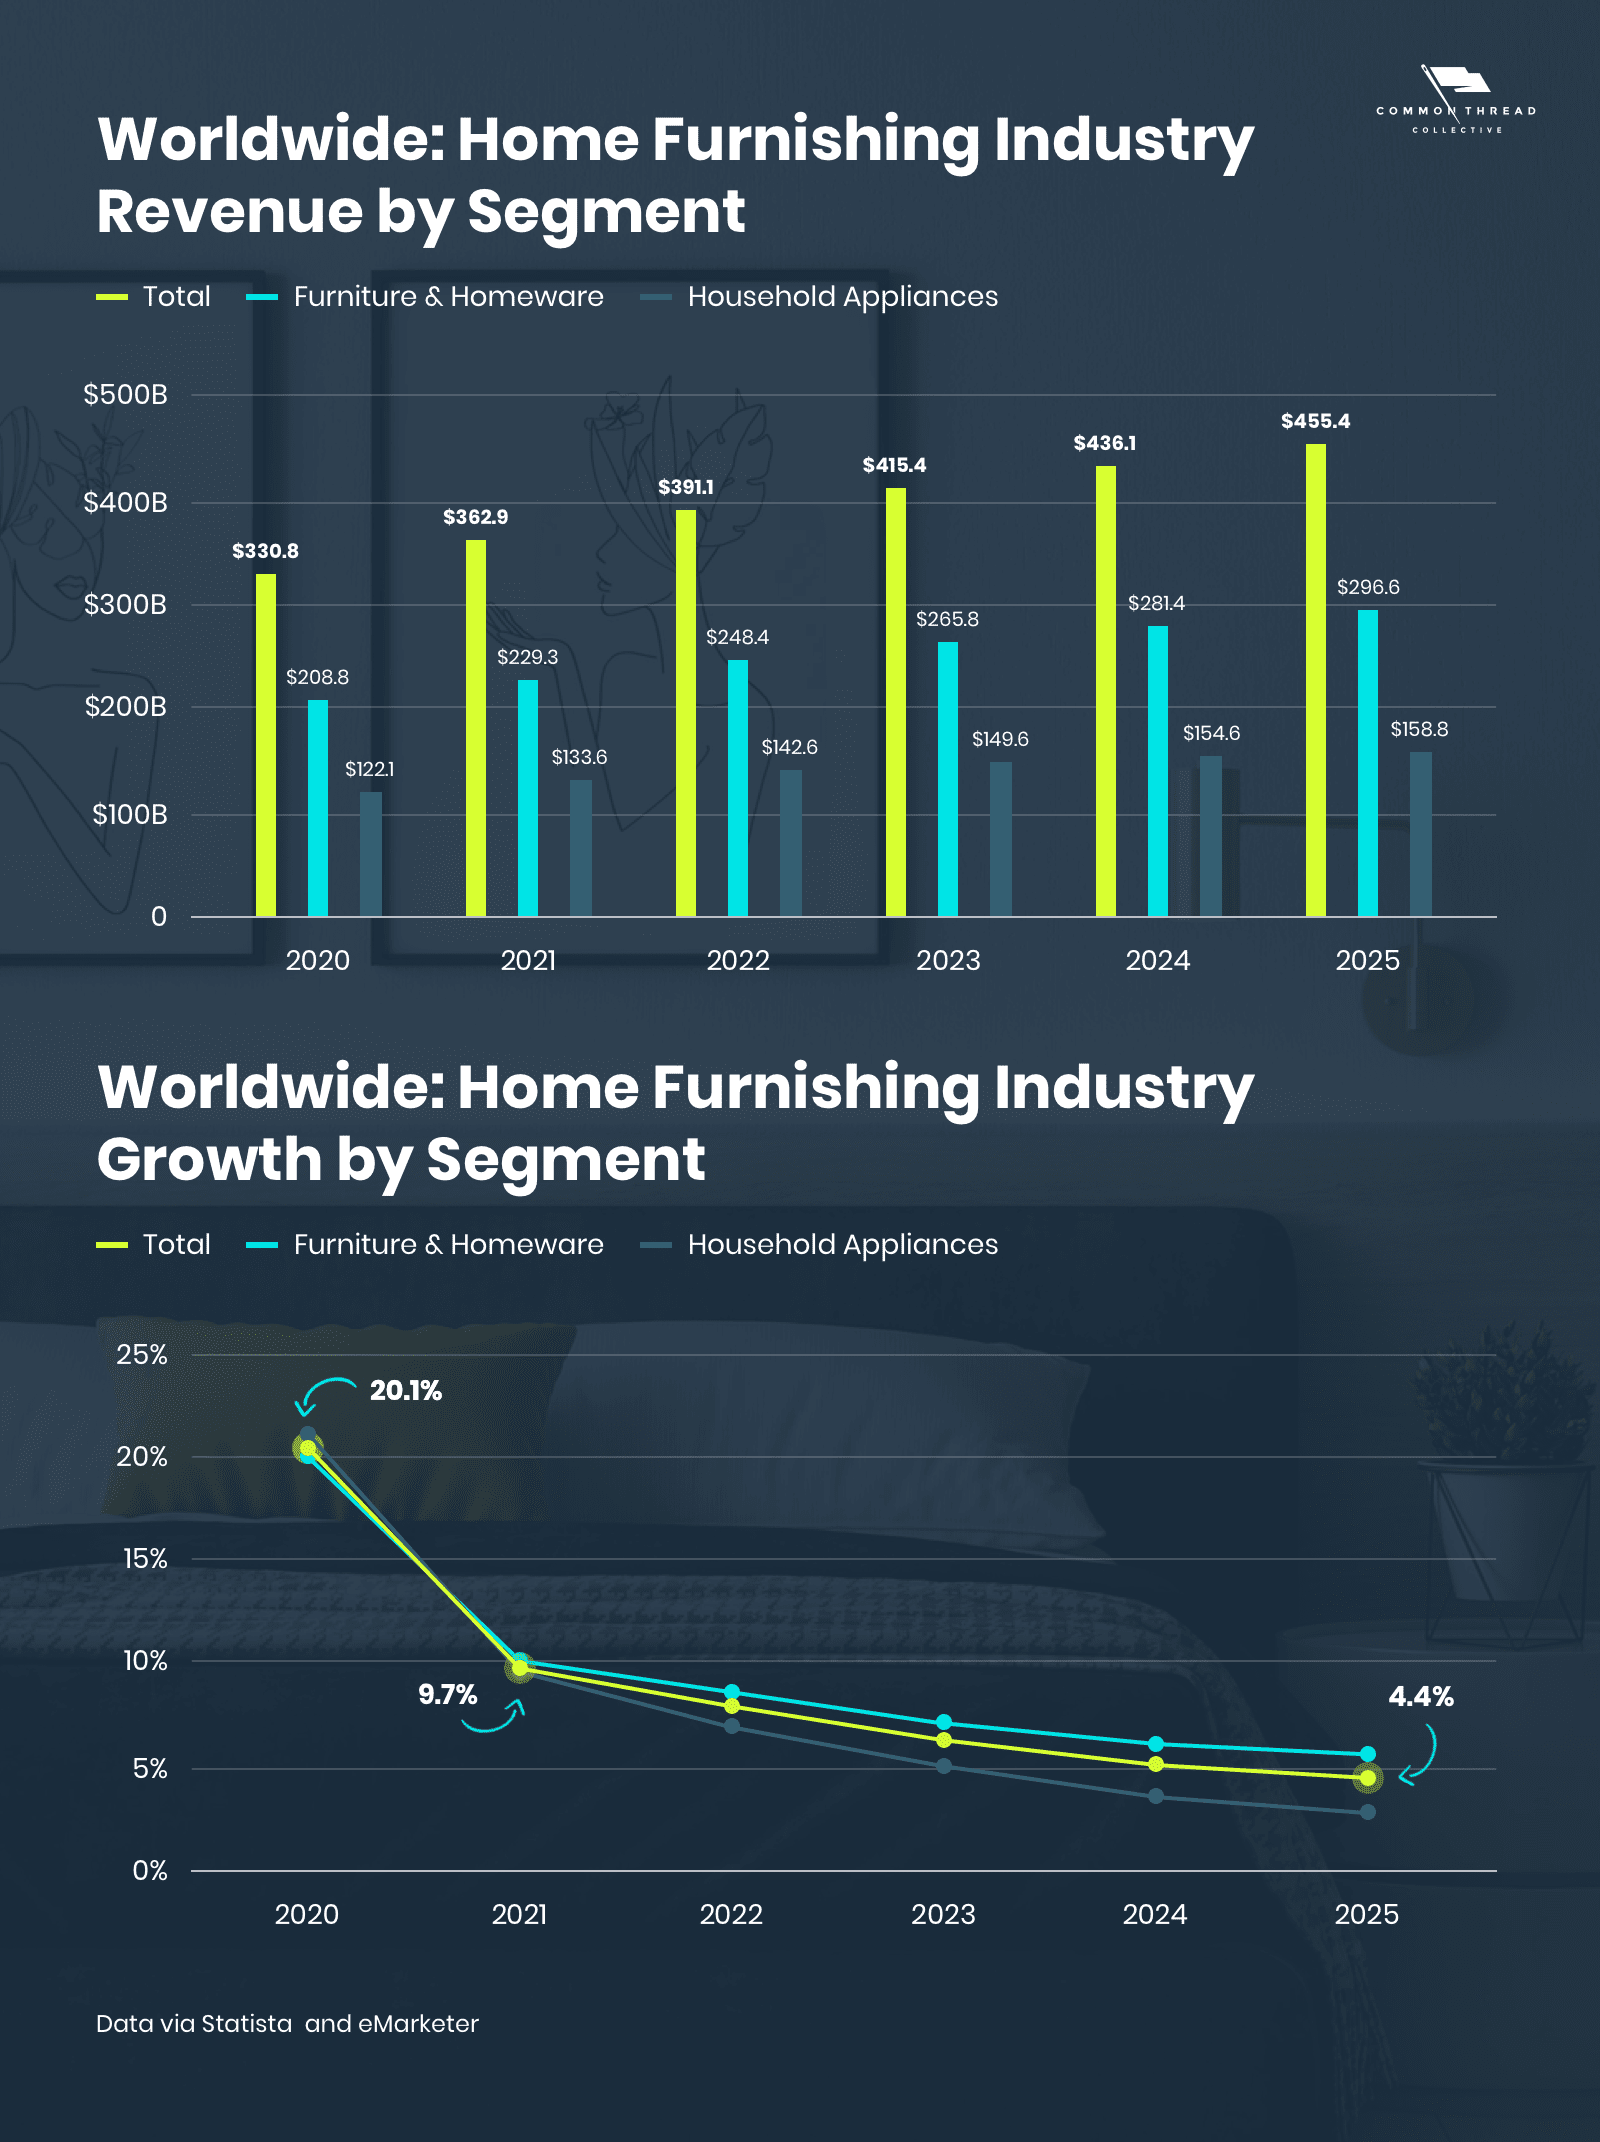 Global Revenue and Growth in the Home Furnishing Industry: Ecommerce